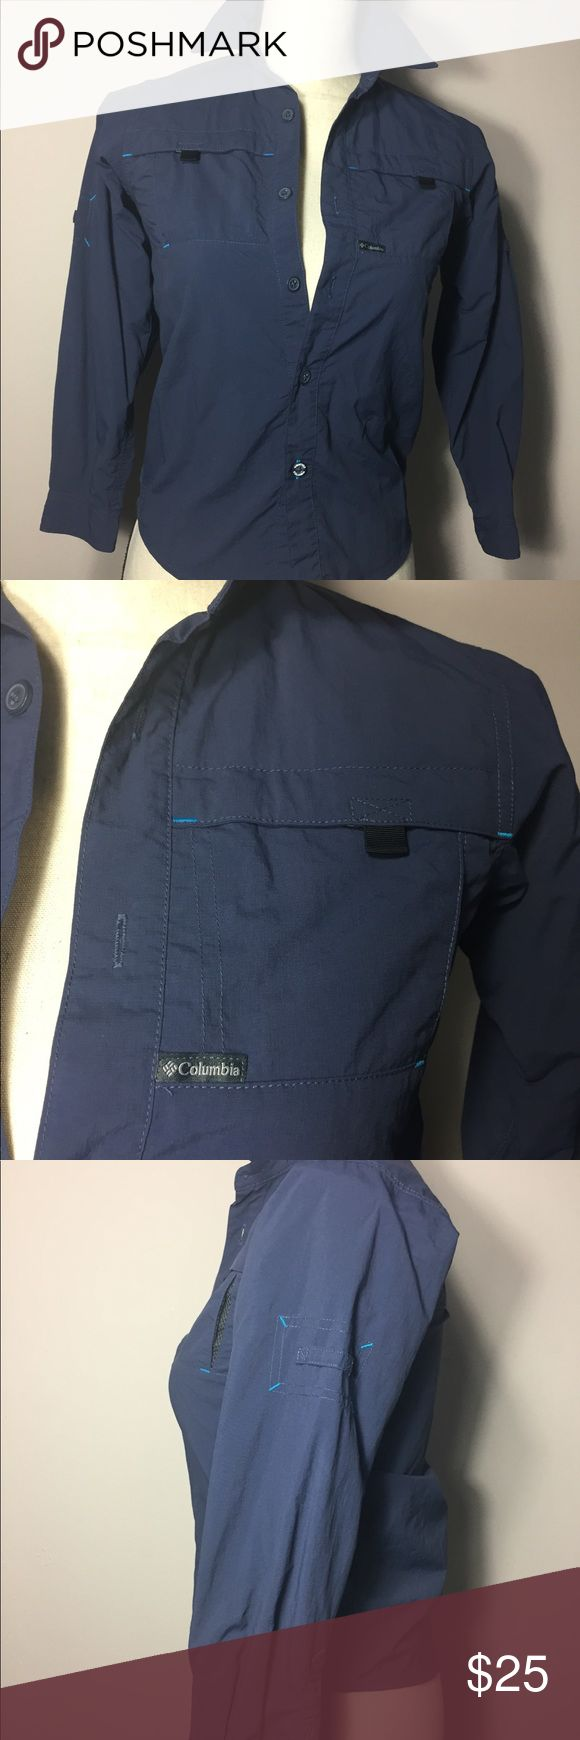 Columbia Blue Omni Shade 3/4 Sleeve Button down Columbia Blue Omni Shade 3/4 Sleeve Button down Shirt Sun protection Size Small Columbia Tops Button Down Shirts